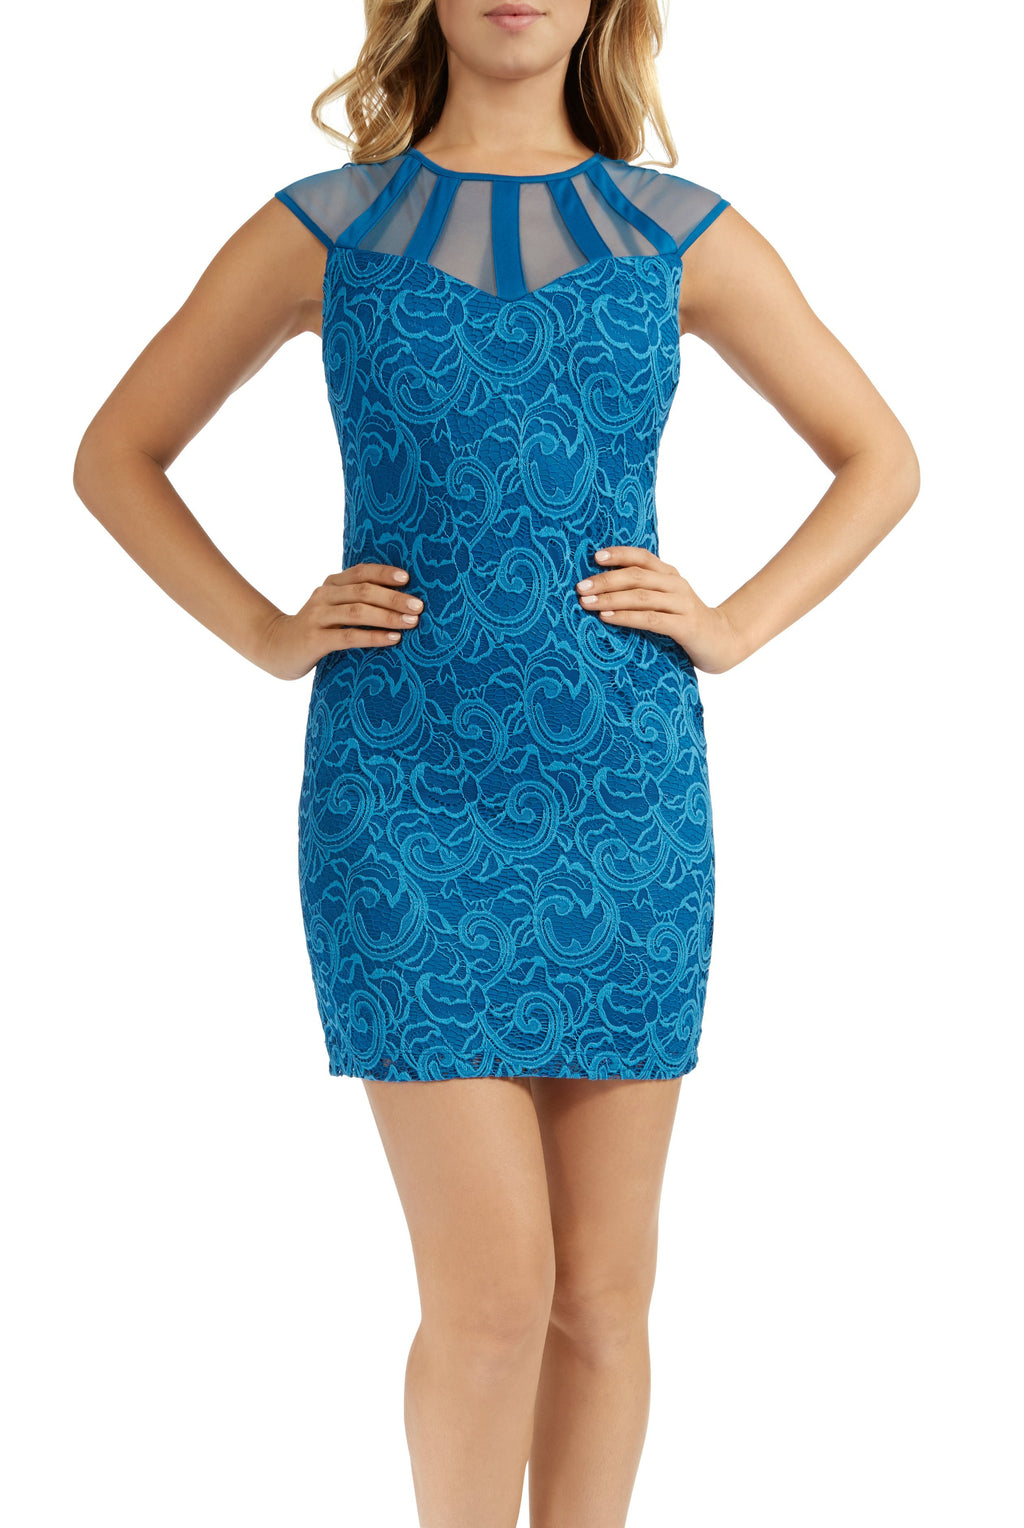 Teeze Me | Cap Sleeve Illusion Top Lace Overlay BodyCon Dress  | Lagoon